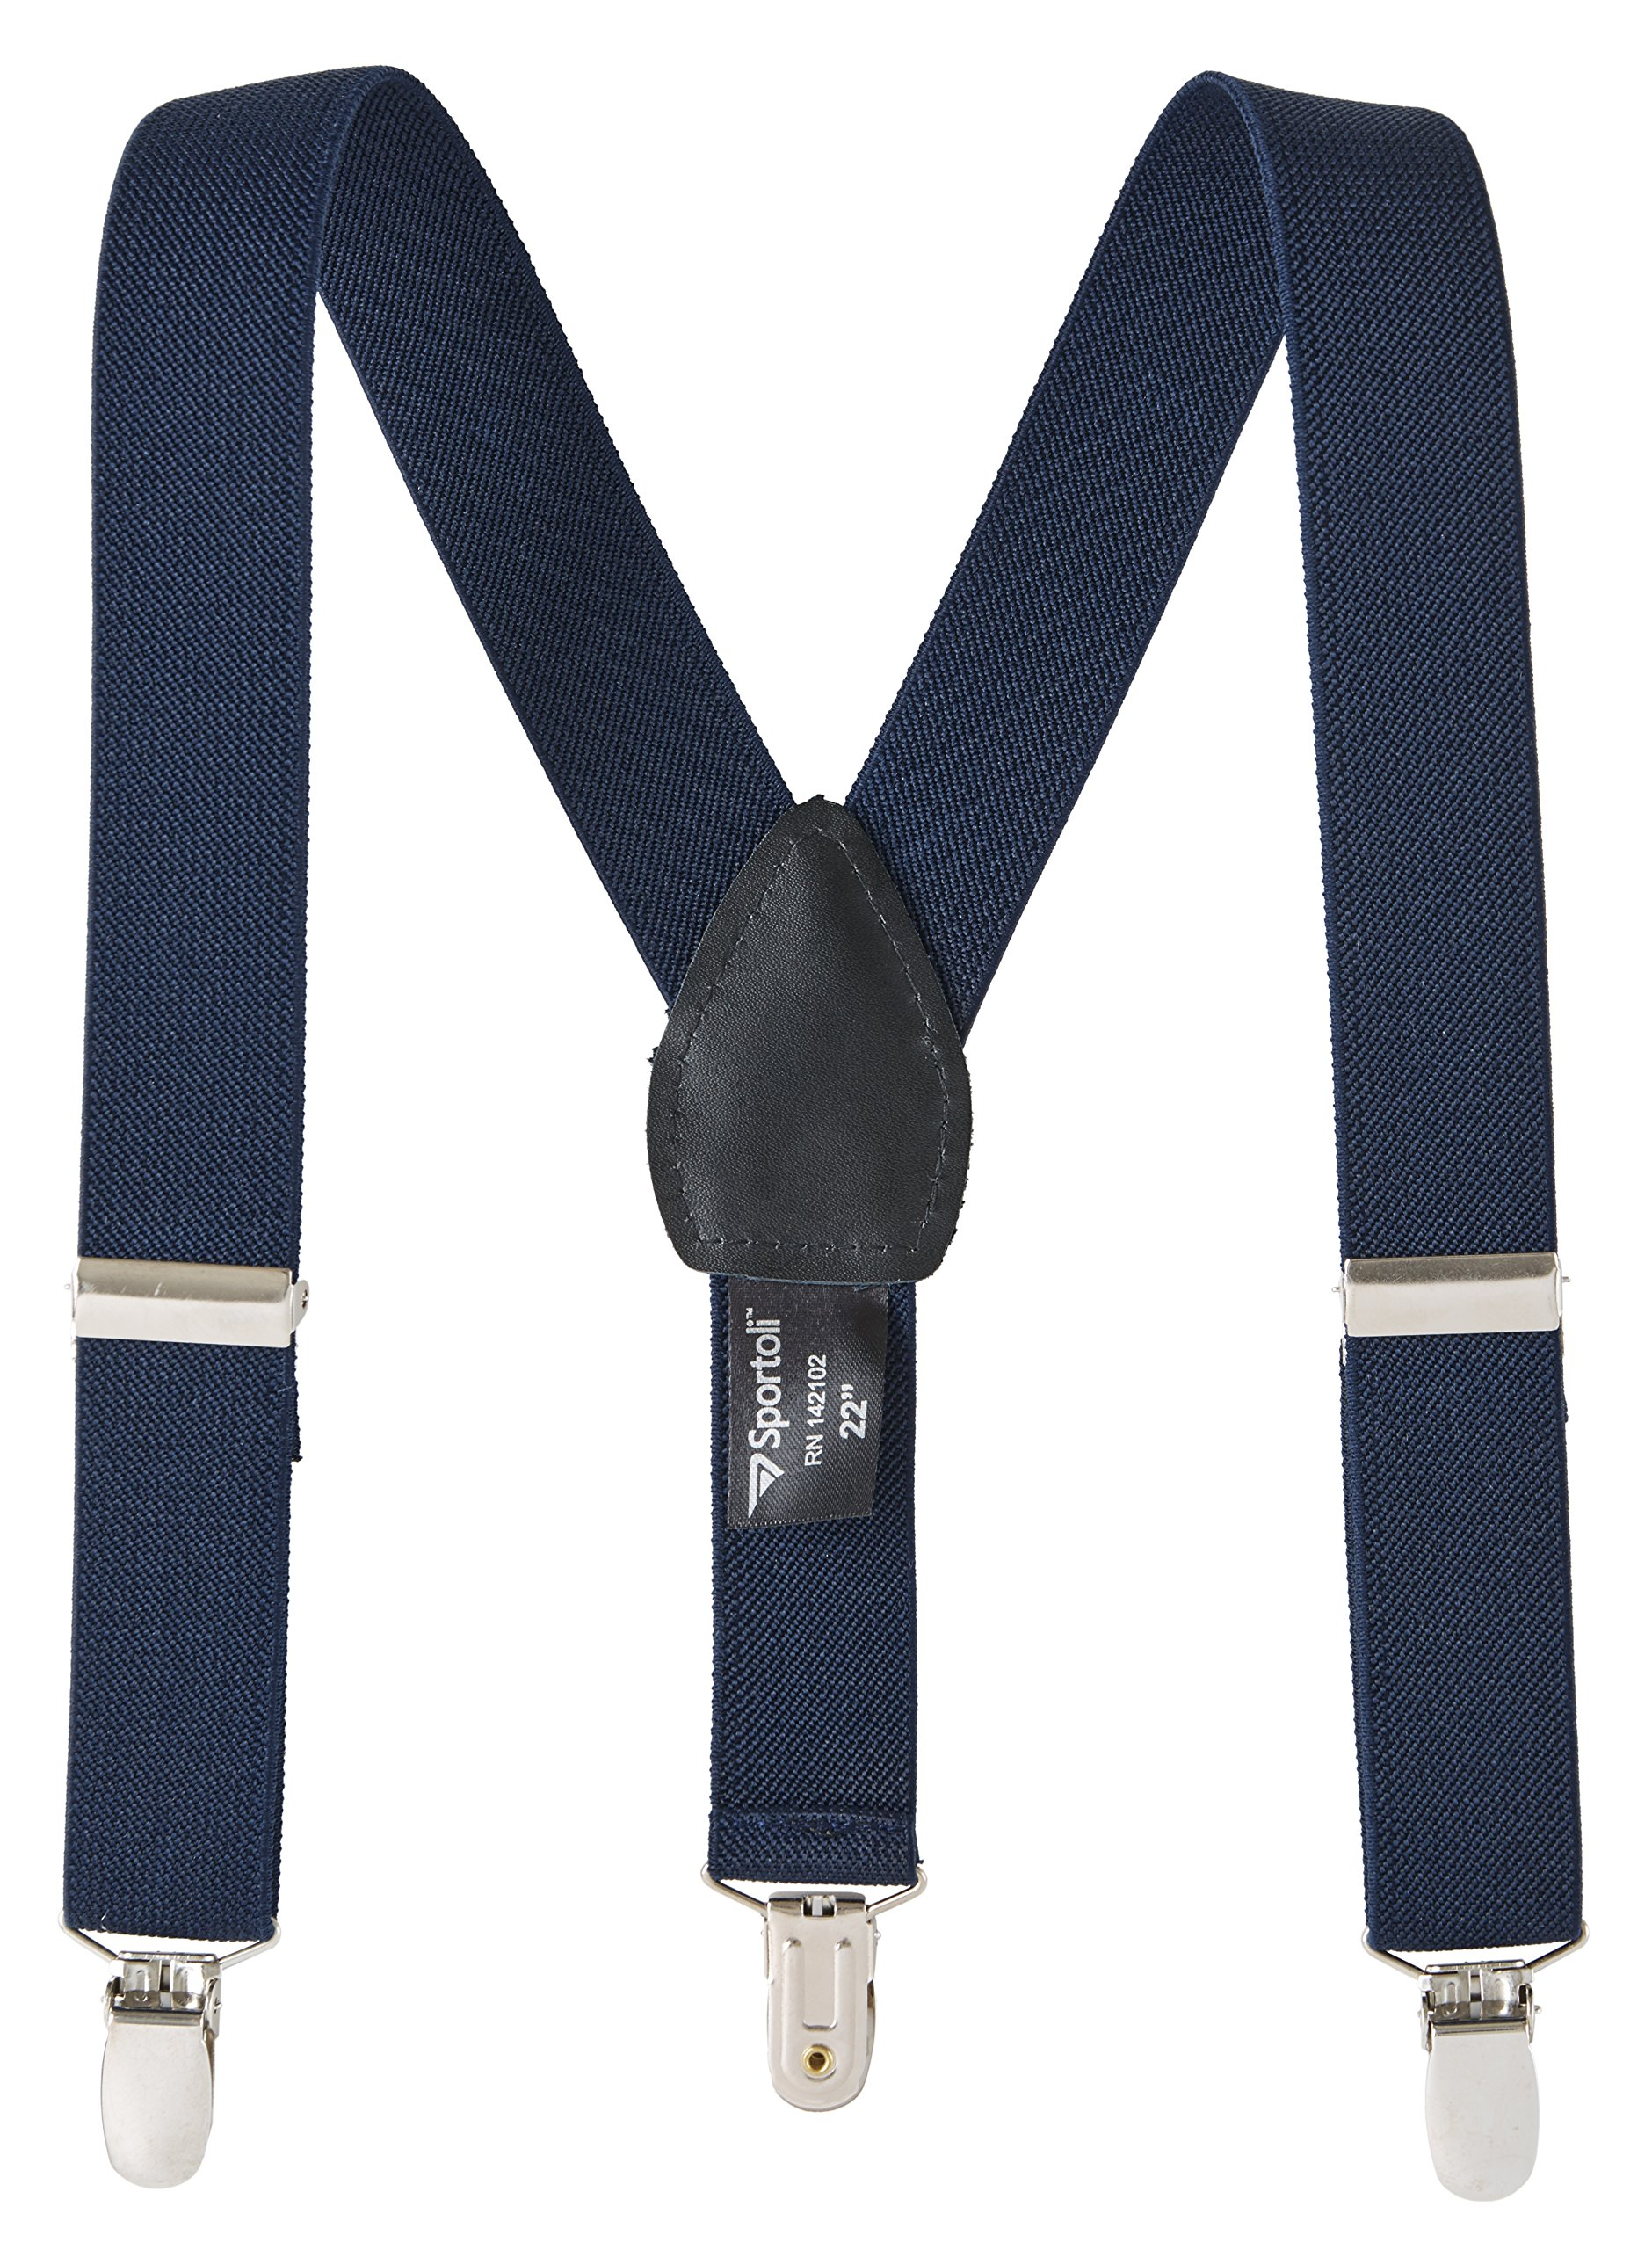 Suspenders for kids Baby Adjustable Elastic Solid, Striped, and Polka Dot Suspenders - Navy (22 Inch)